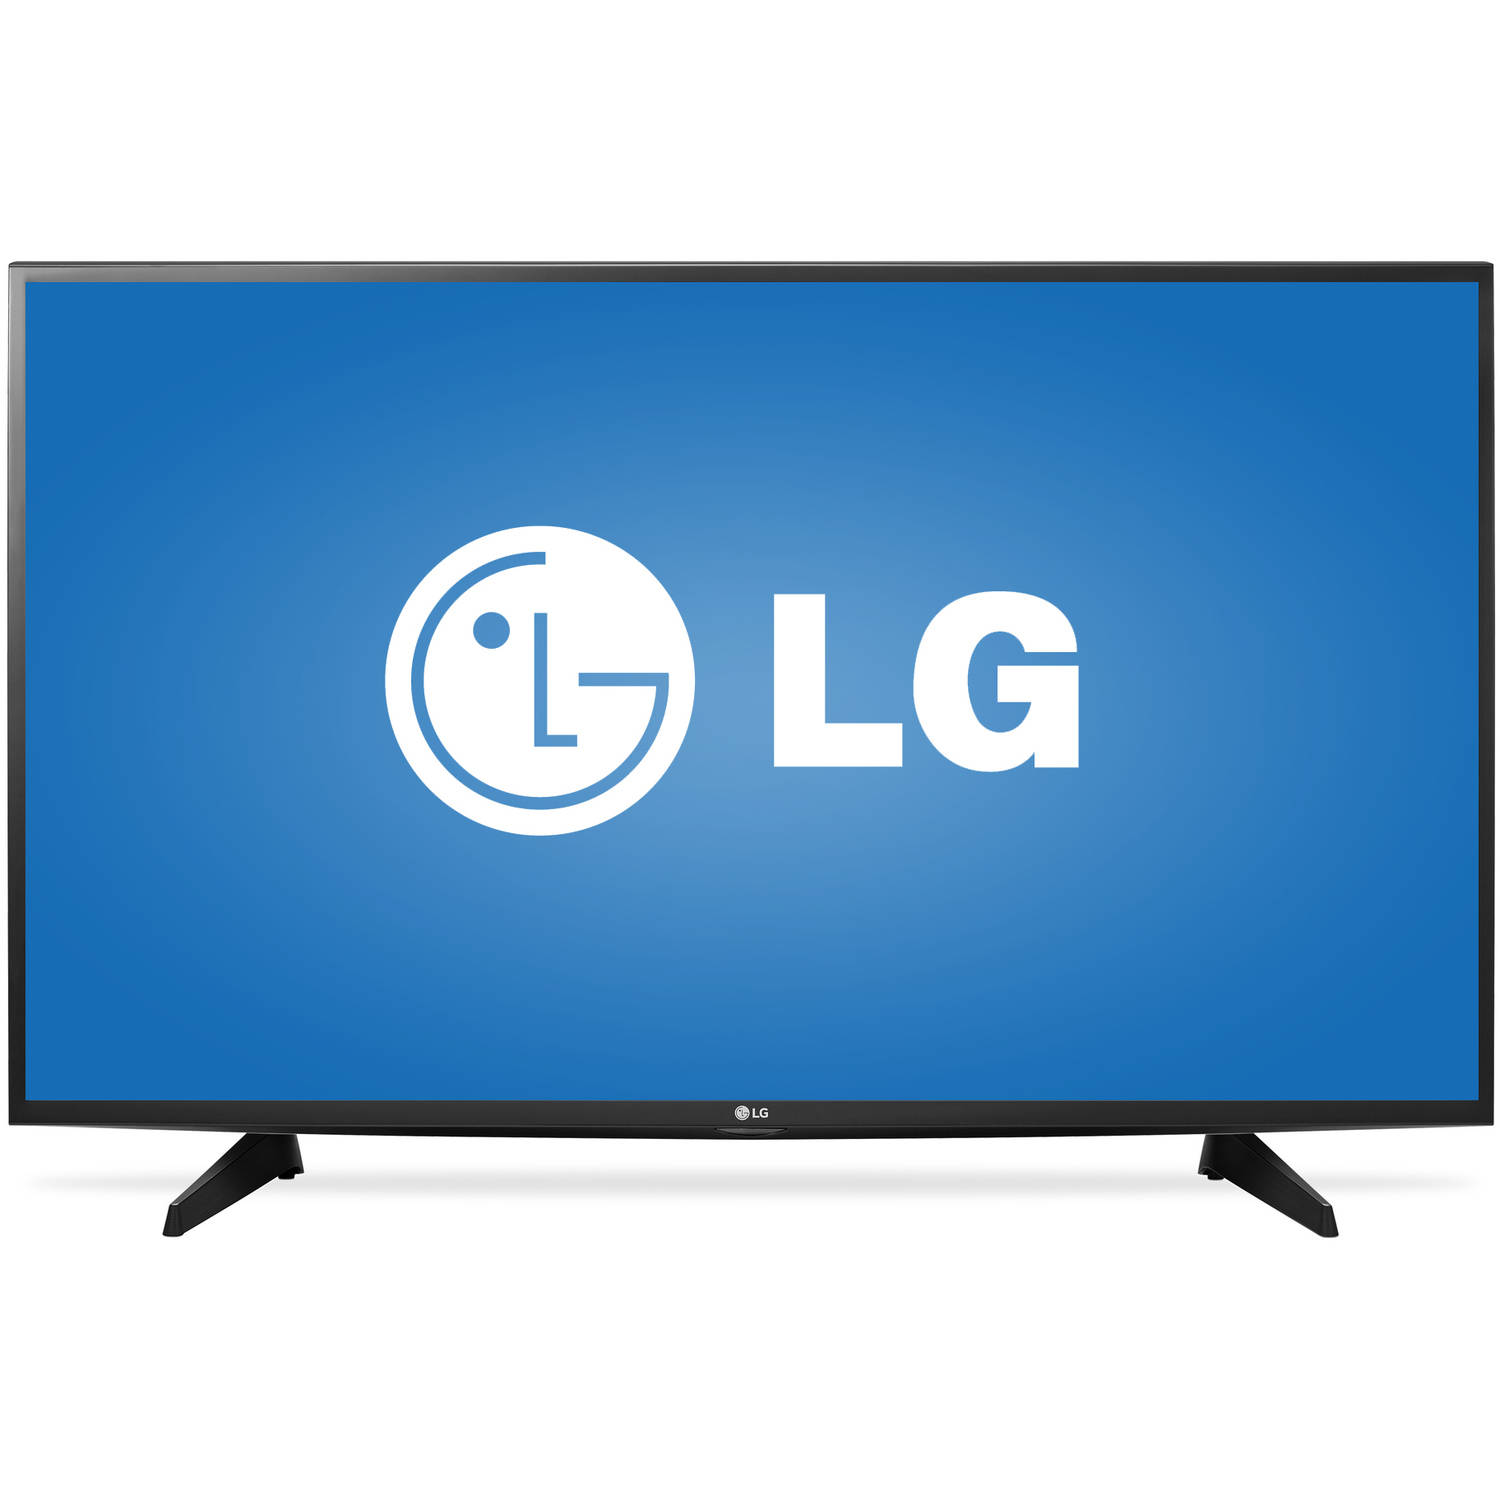 "LG 49LH5700 49"" 1080p 60Hz LED Smart HDTV"